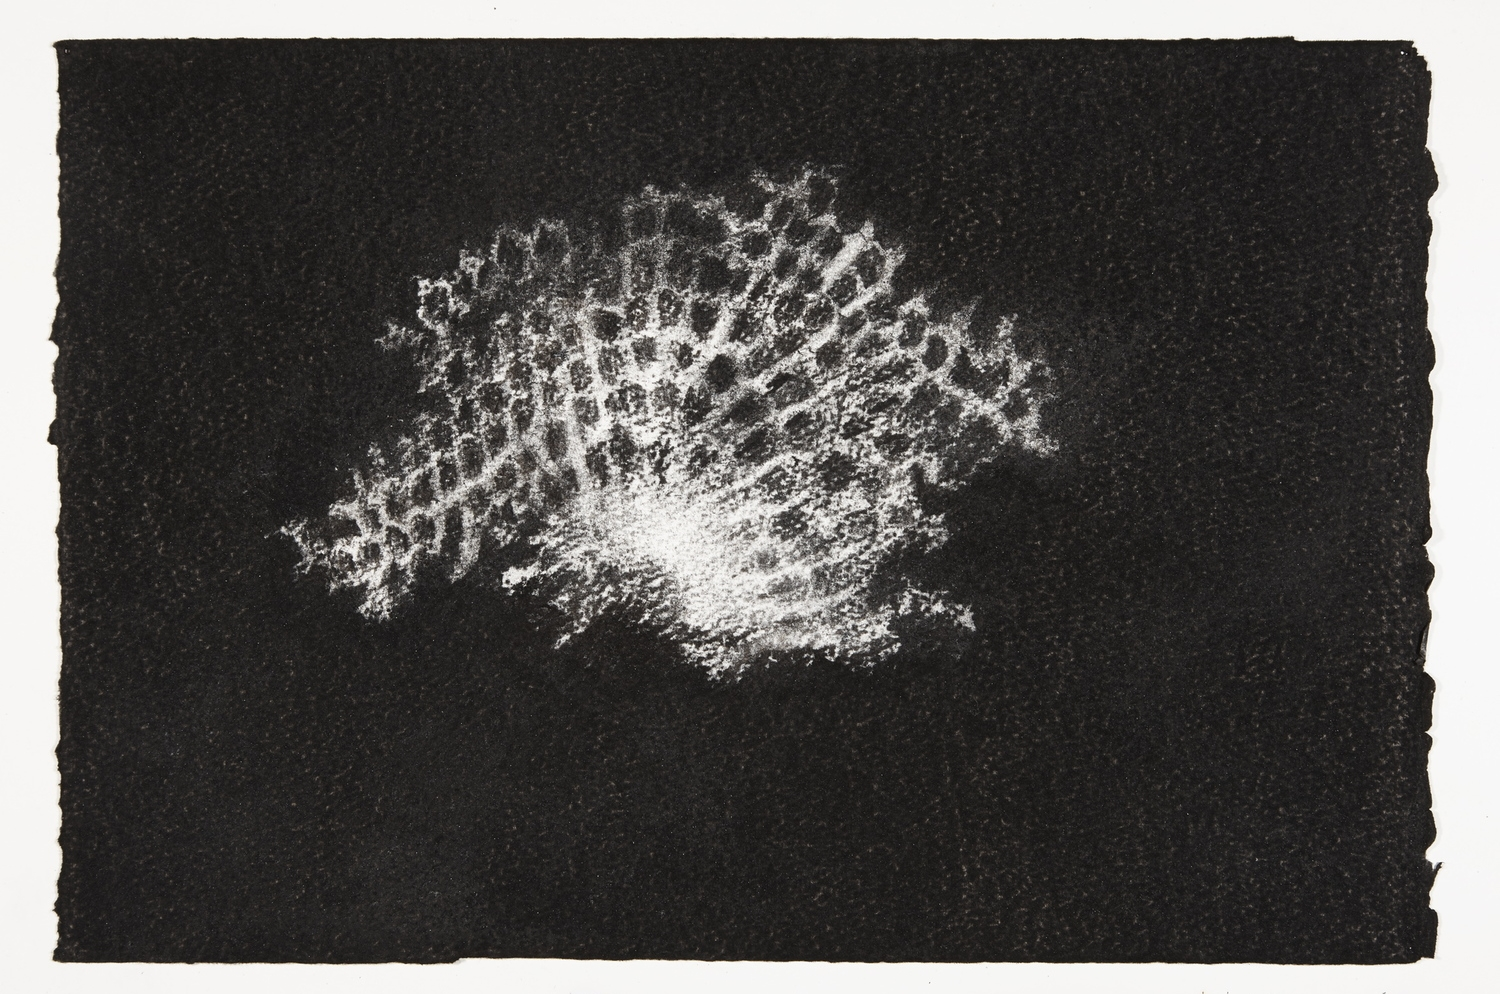 Wasp's Nest, 2013-2014, charcoal on paper, 22x33cm